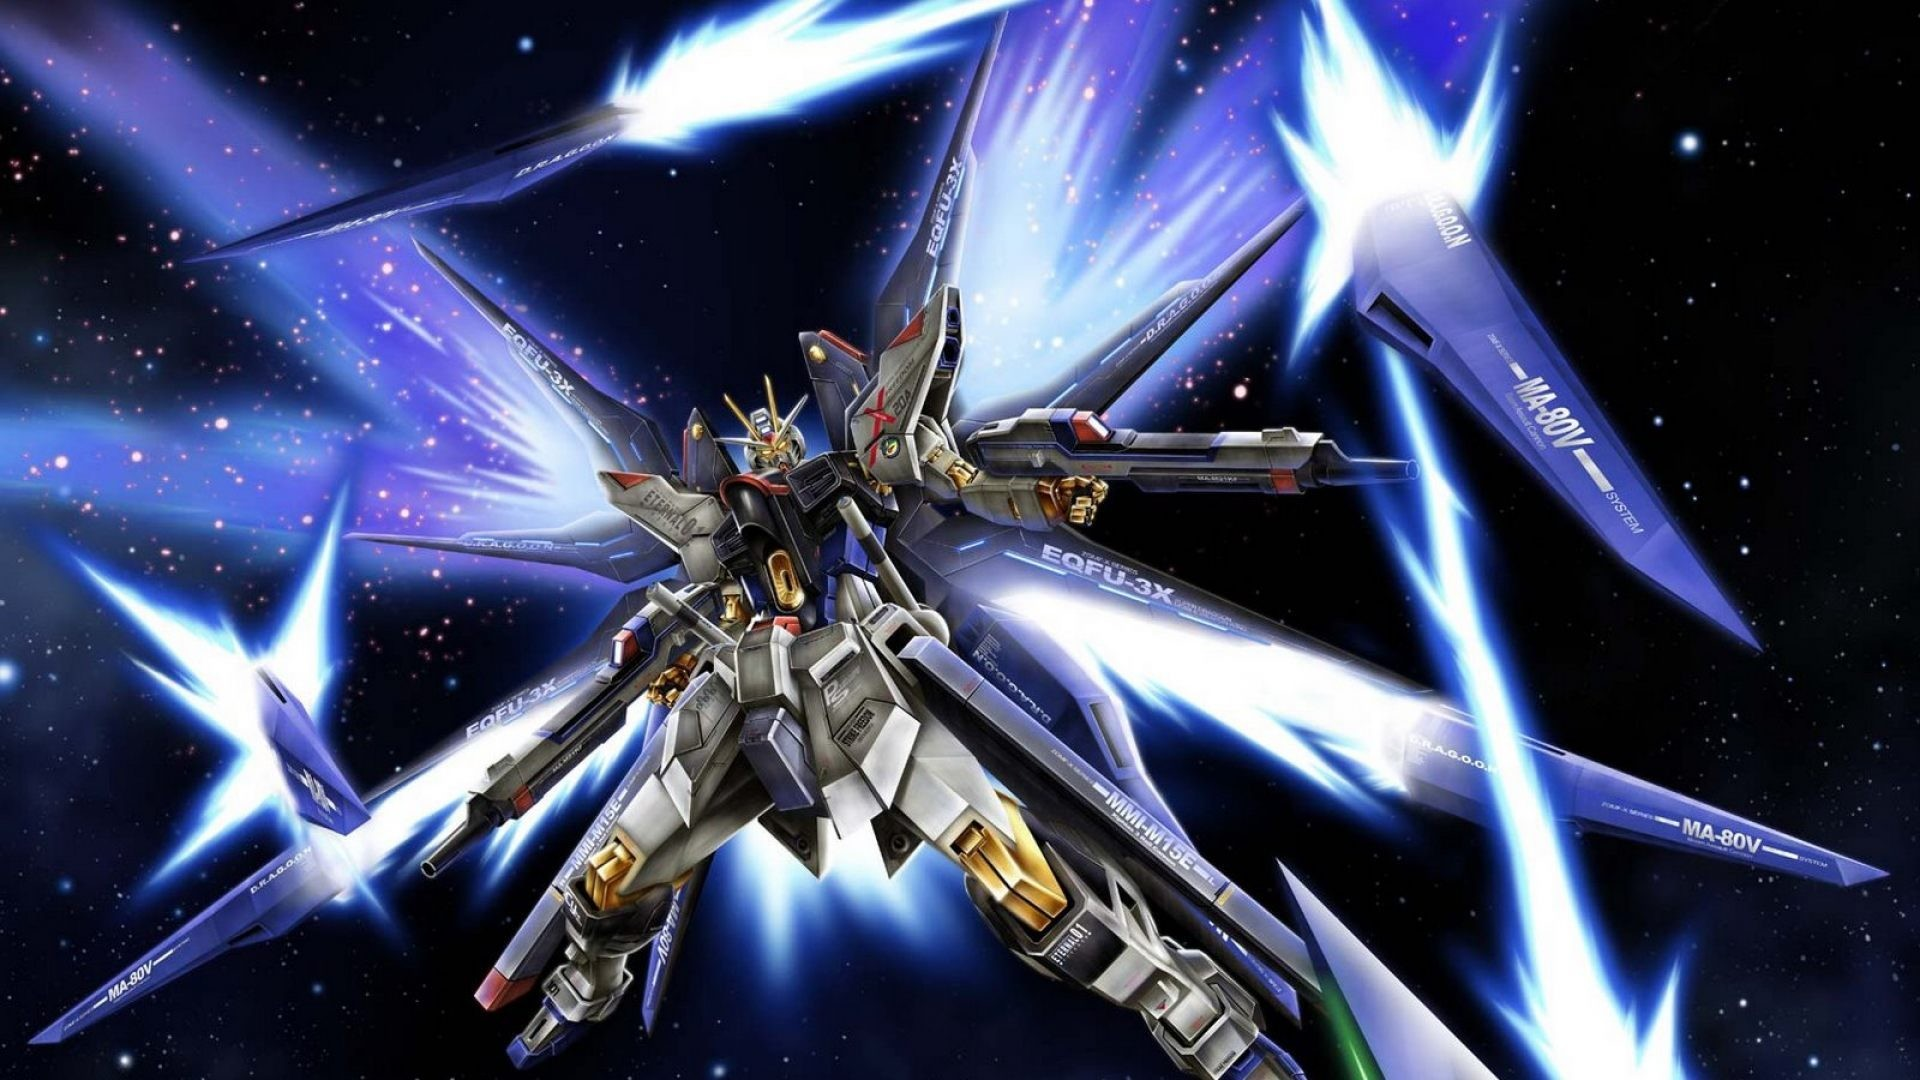 1920x1080 - Mobile Suit Gundam Seed Destiny Wallpapers 19